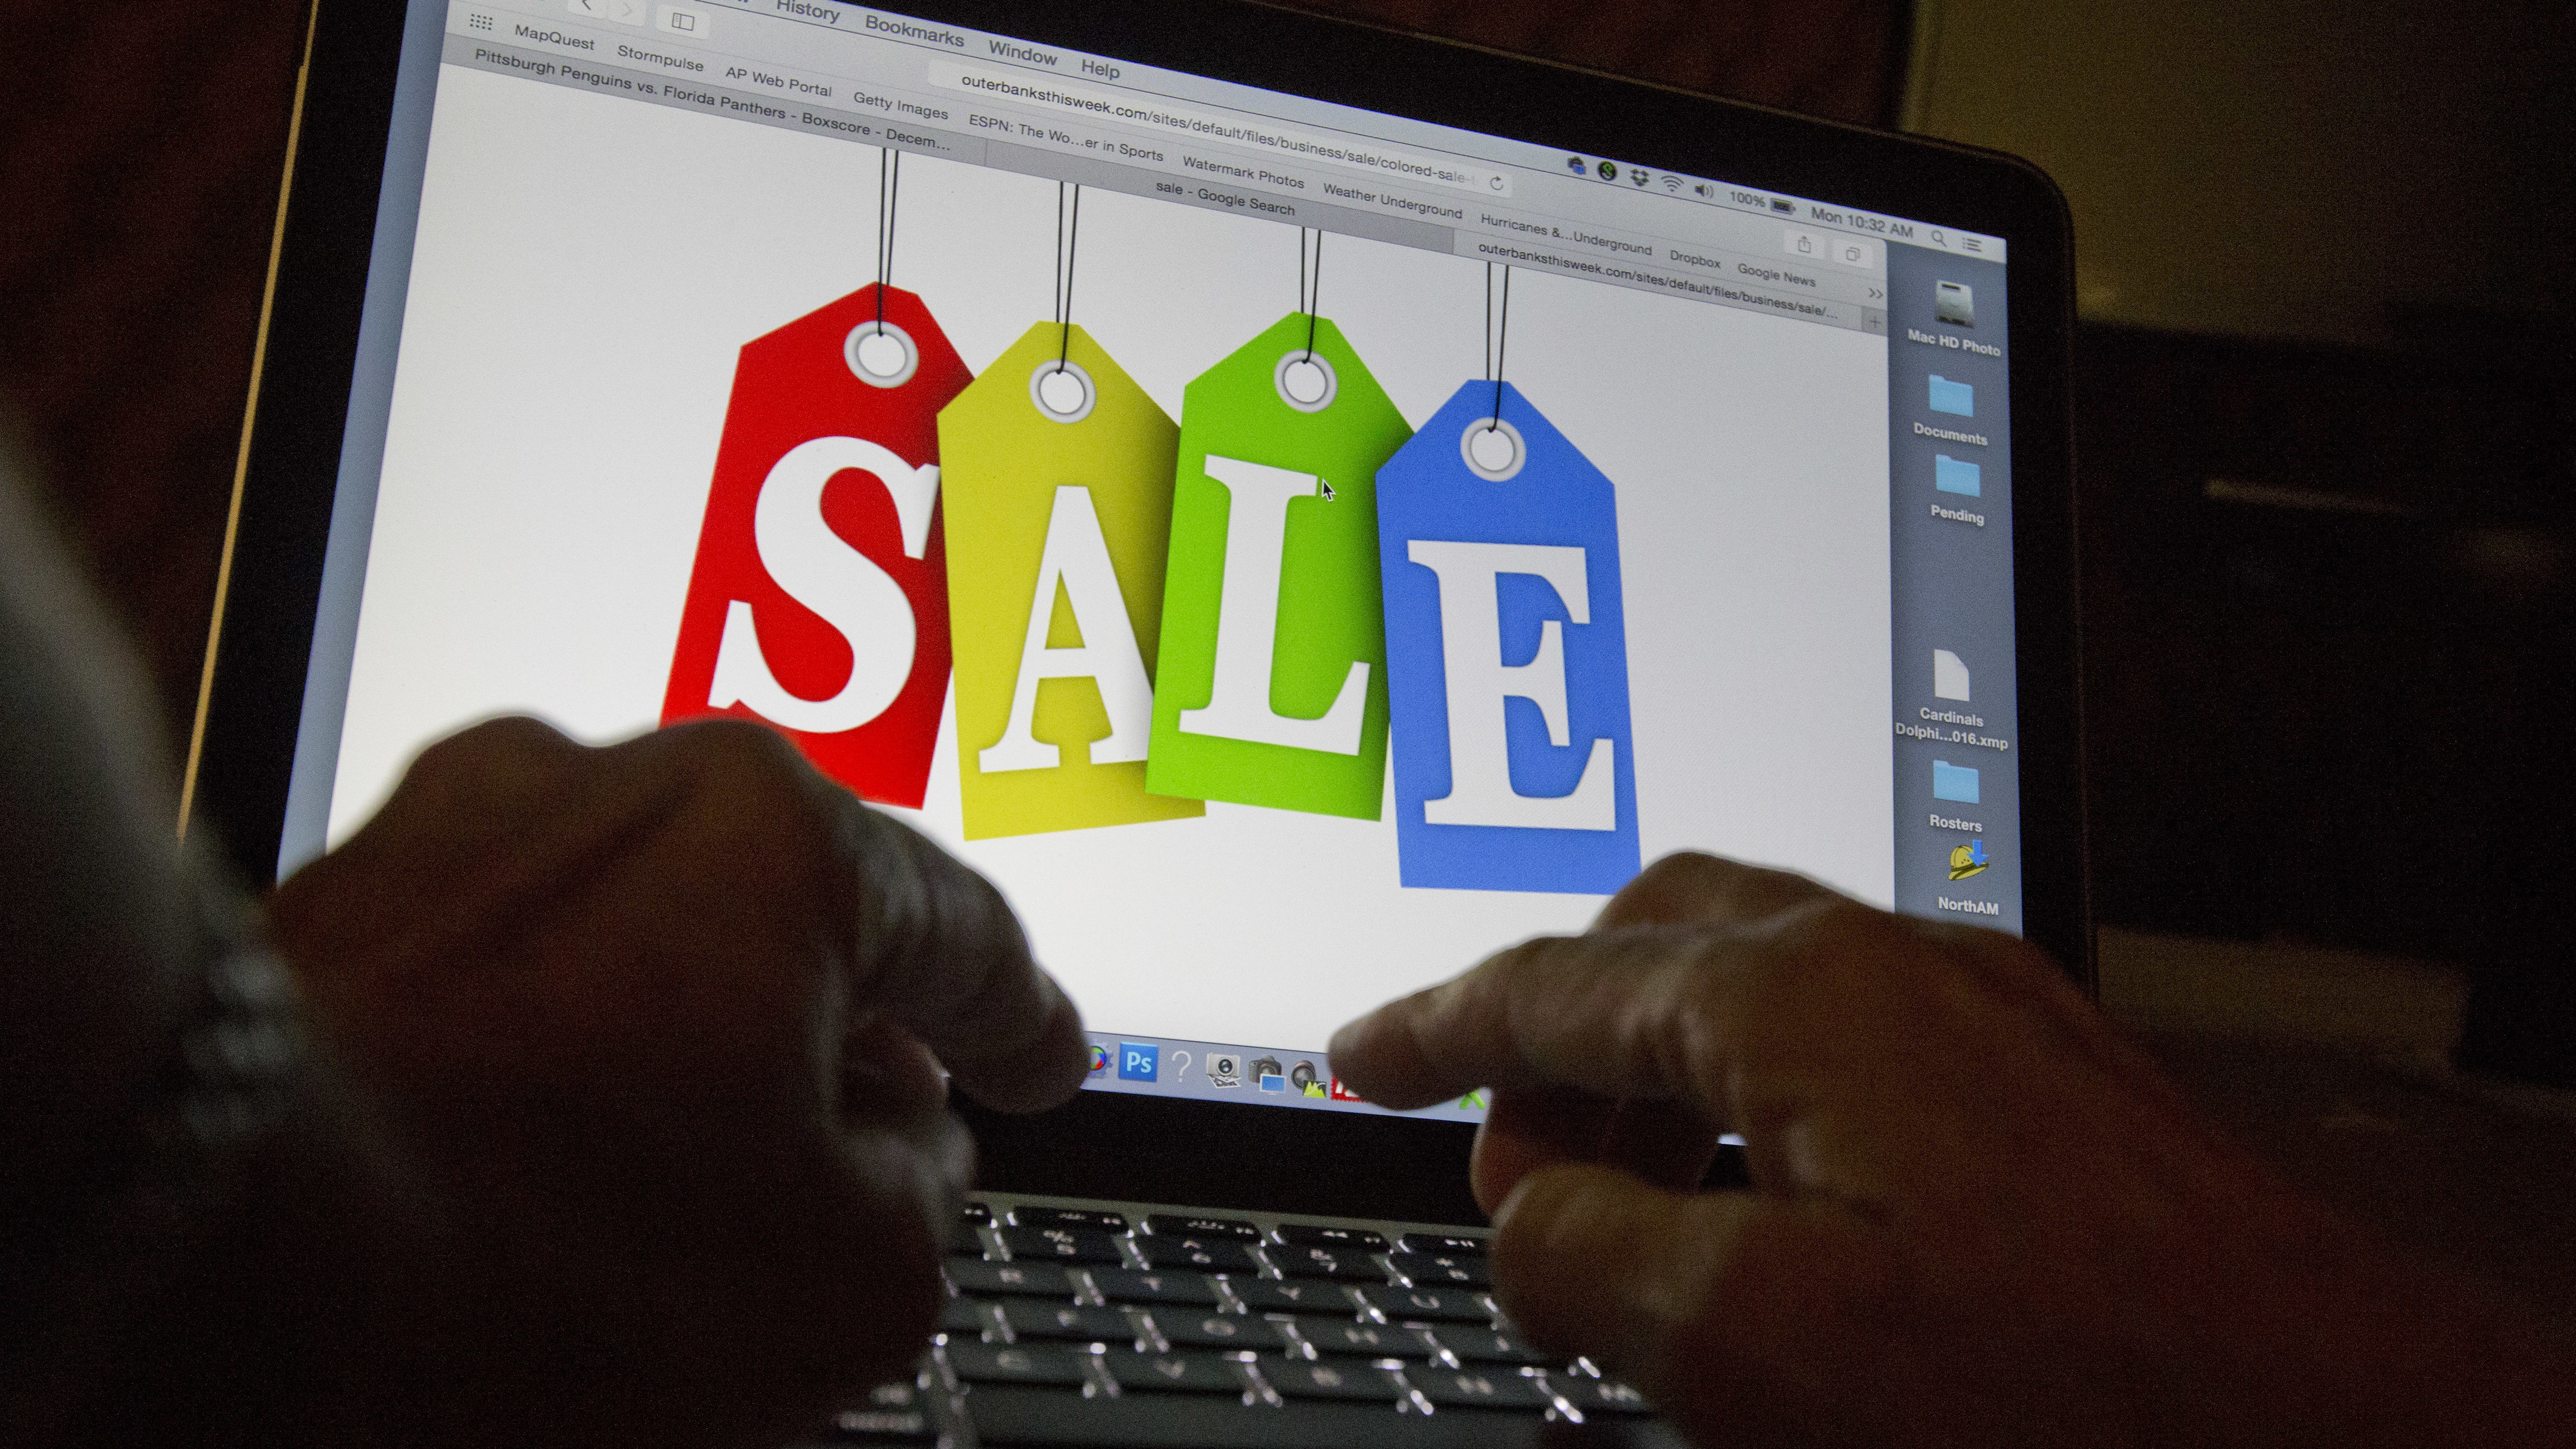 Will You Soon Have To Pay Sales Tax On Every Online Purchase?